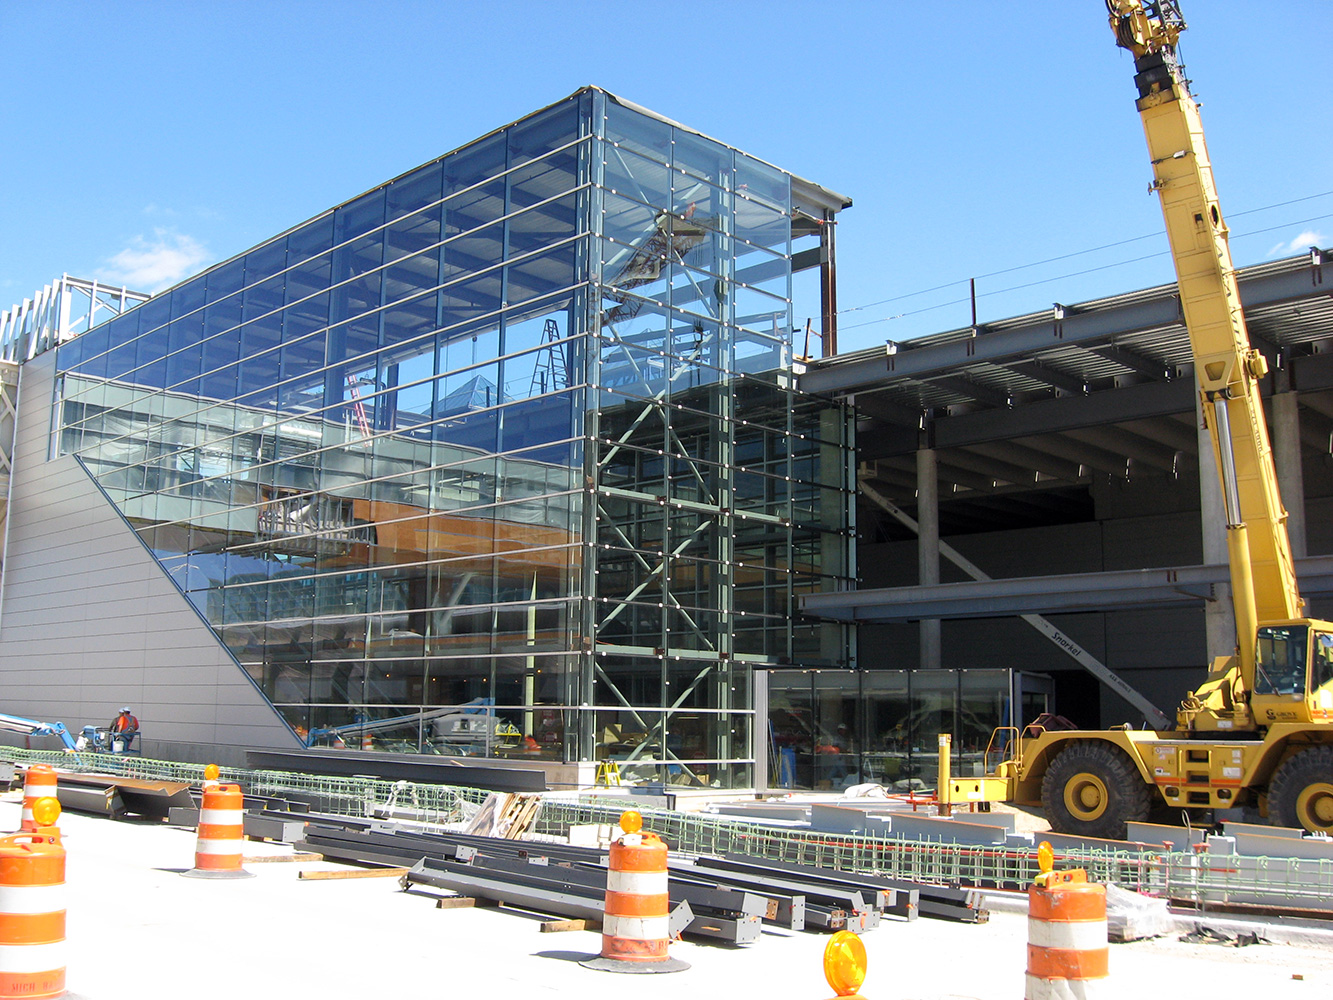 Construction Engineering Building And Steel Structural Engineering Capabilities Ruby Associates